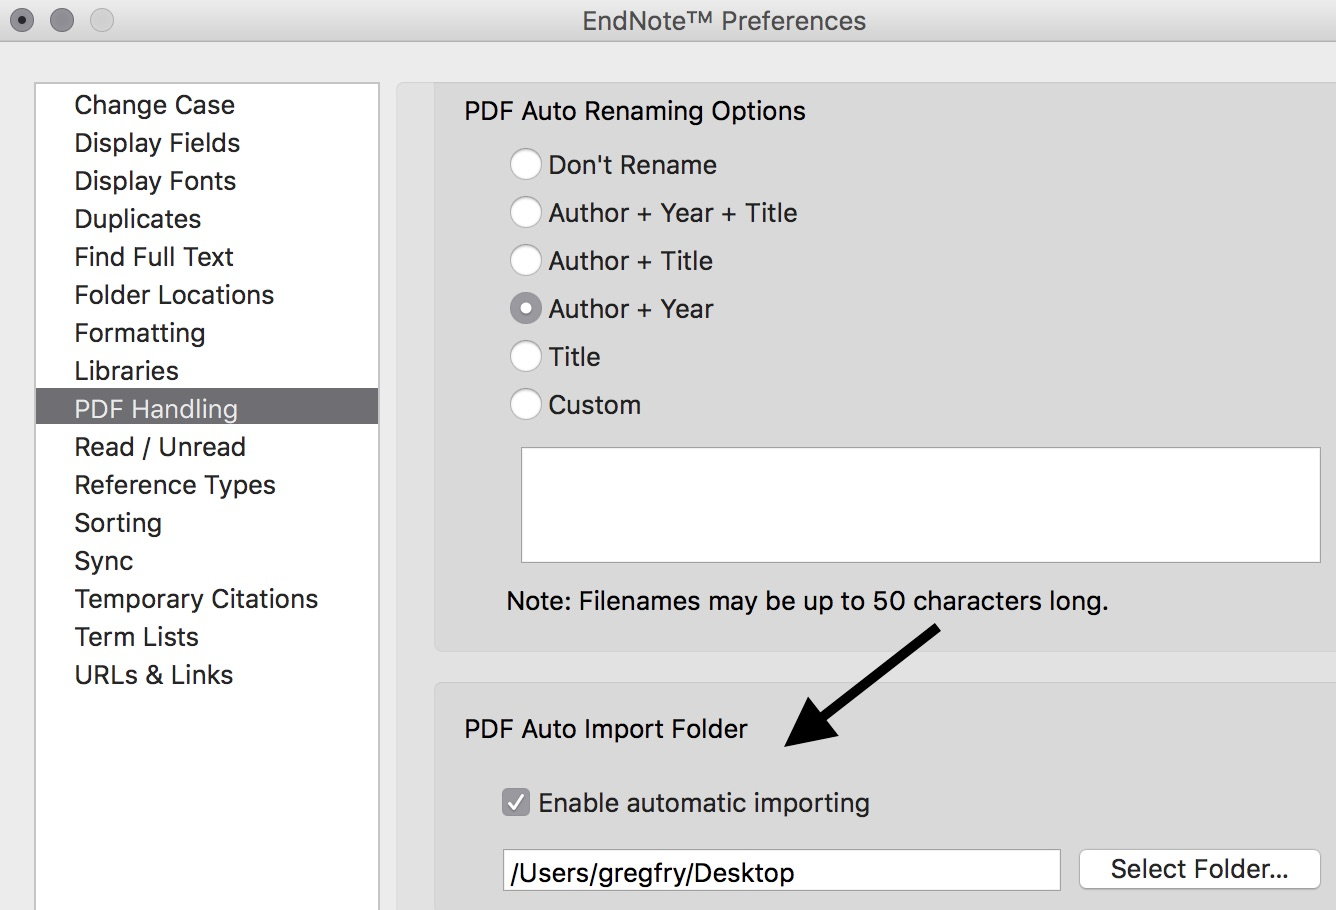 In the PDF Handling section of EndNote Preferences menu, there's a check box to Enable automatic importing, and a field to select the download folder